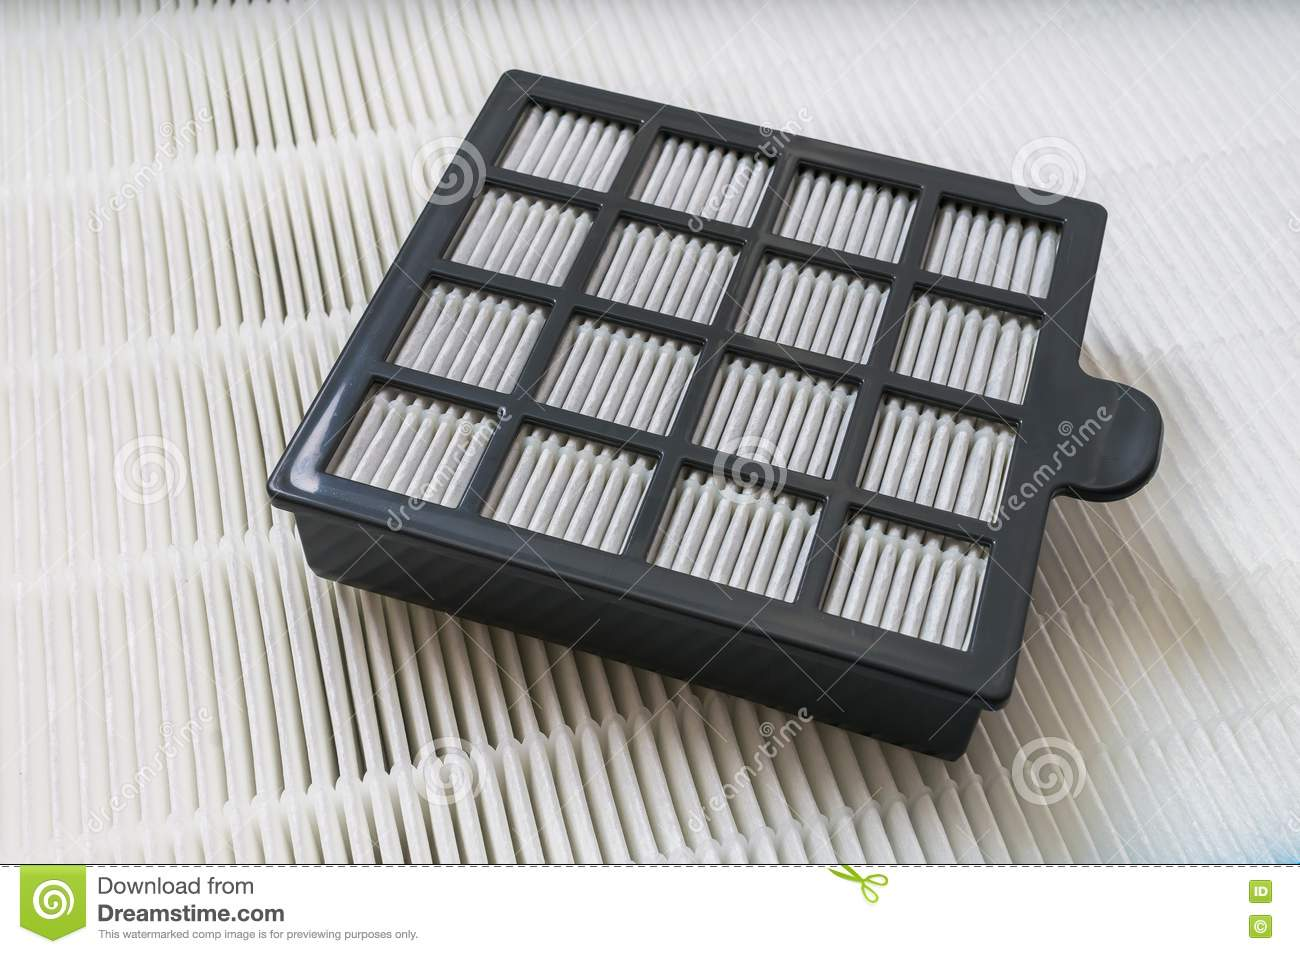 Closeup view on high efficiency particle air filter